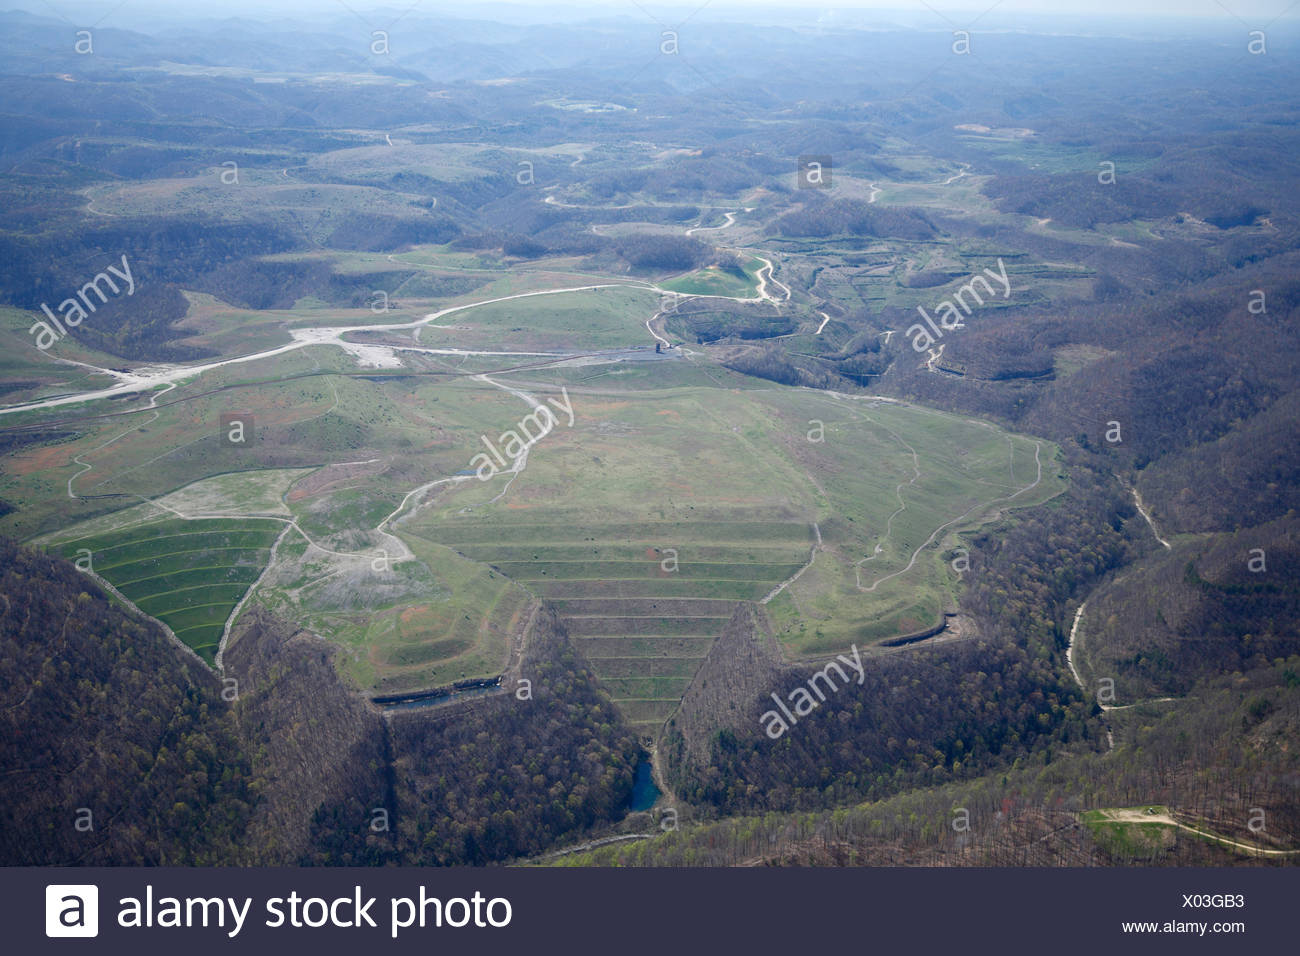 Aerial view Mountaintop Removal coal mining in West Virginia - Stock Image